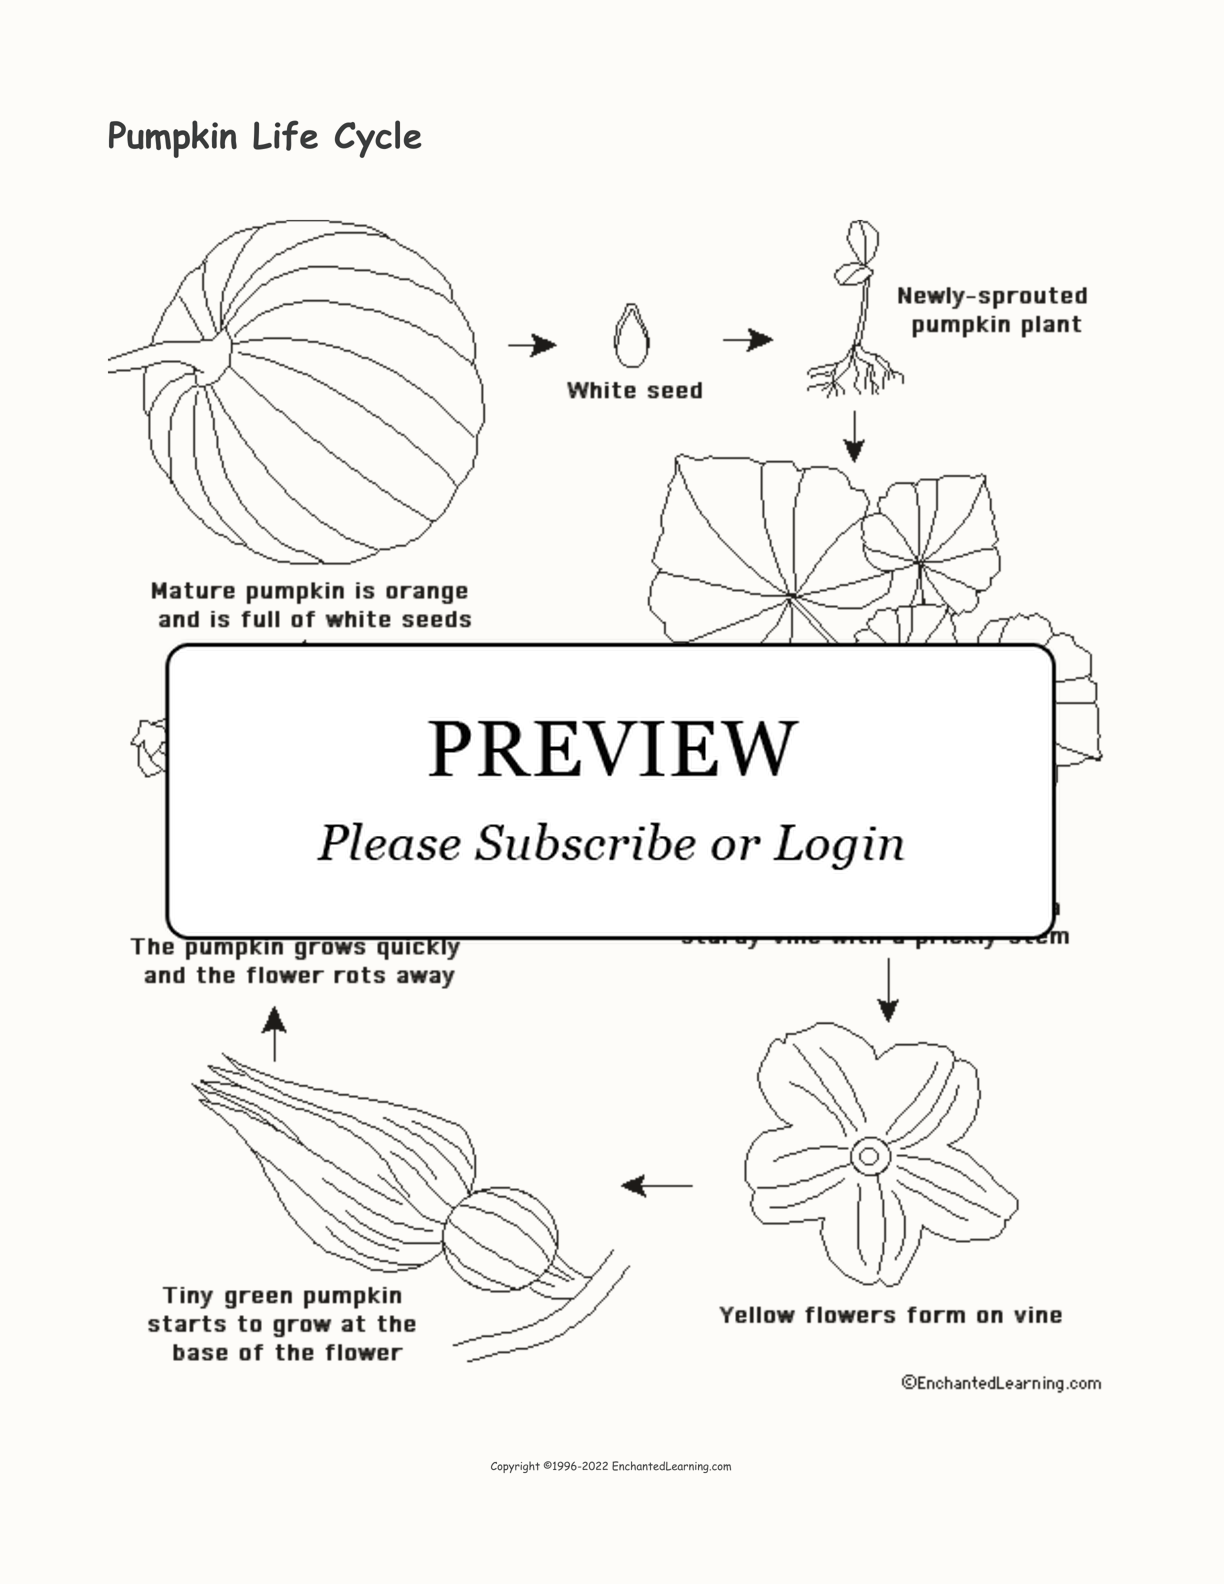 Pumpkin Life Cycle interactive printout page 1